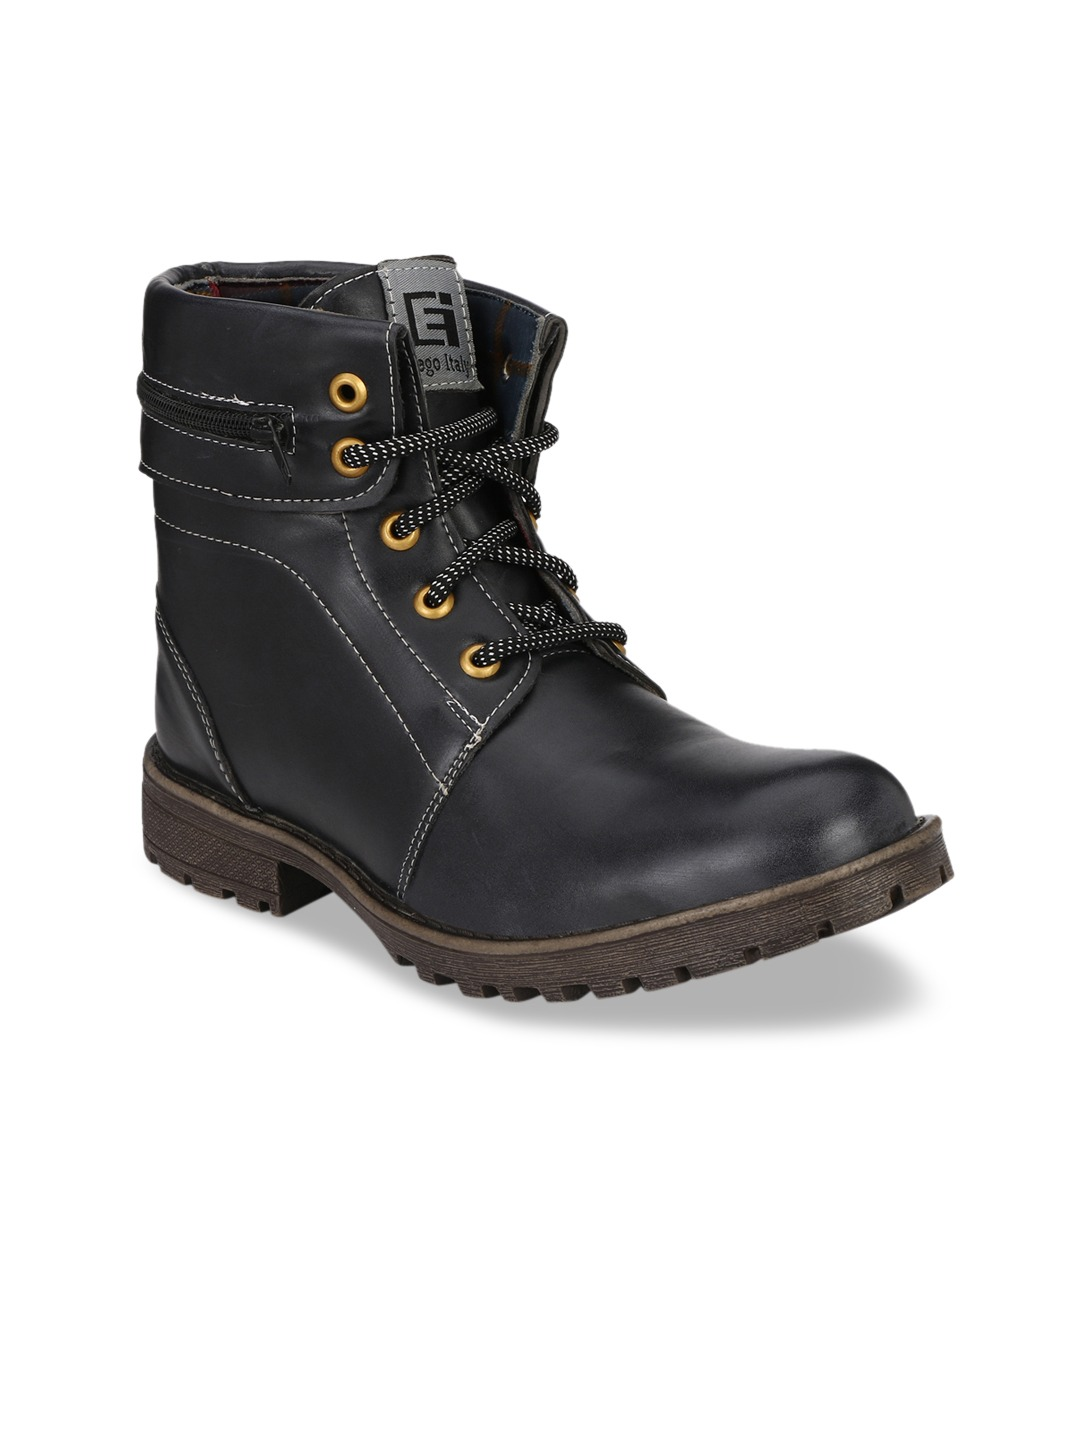 Black Solid Synthetic High-Top Flat Boots